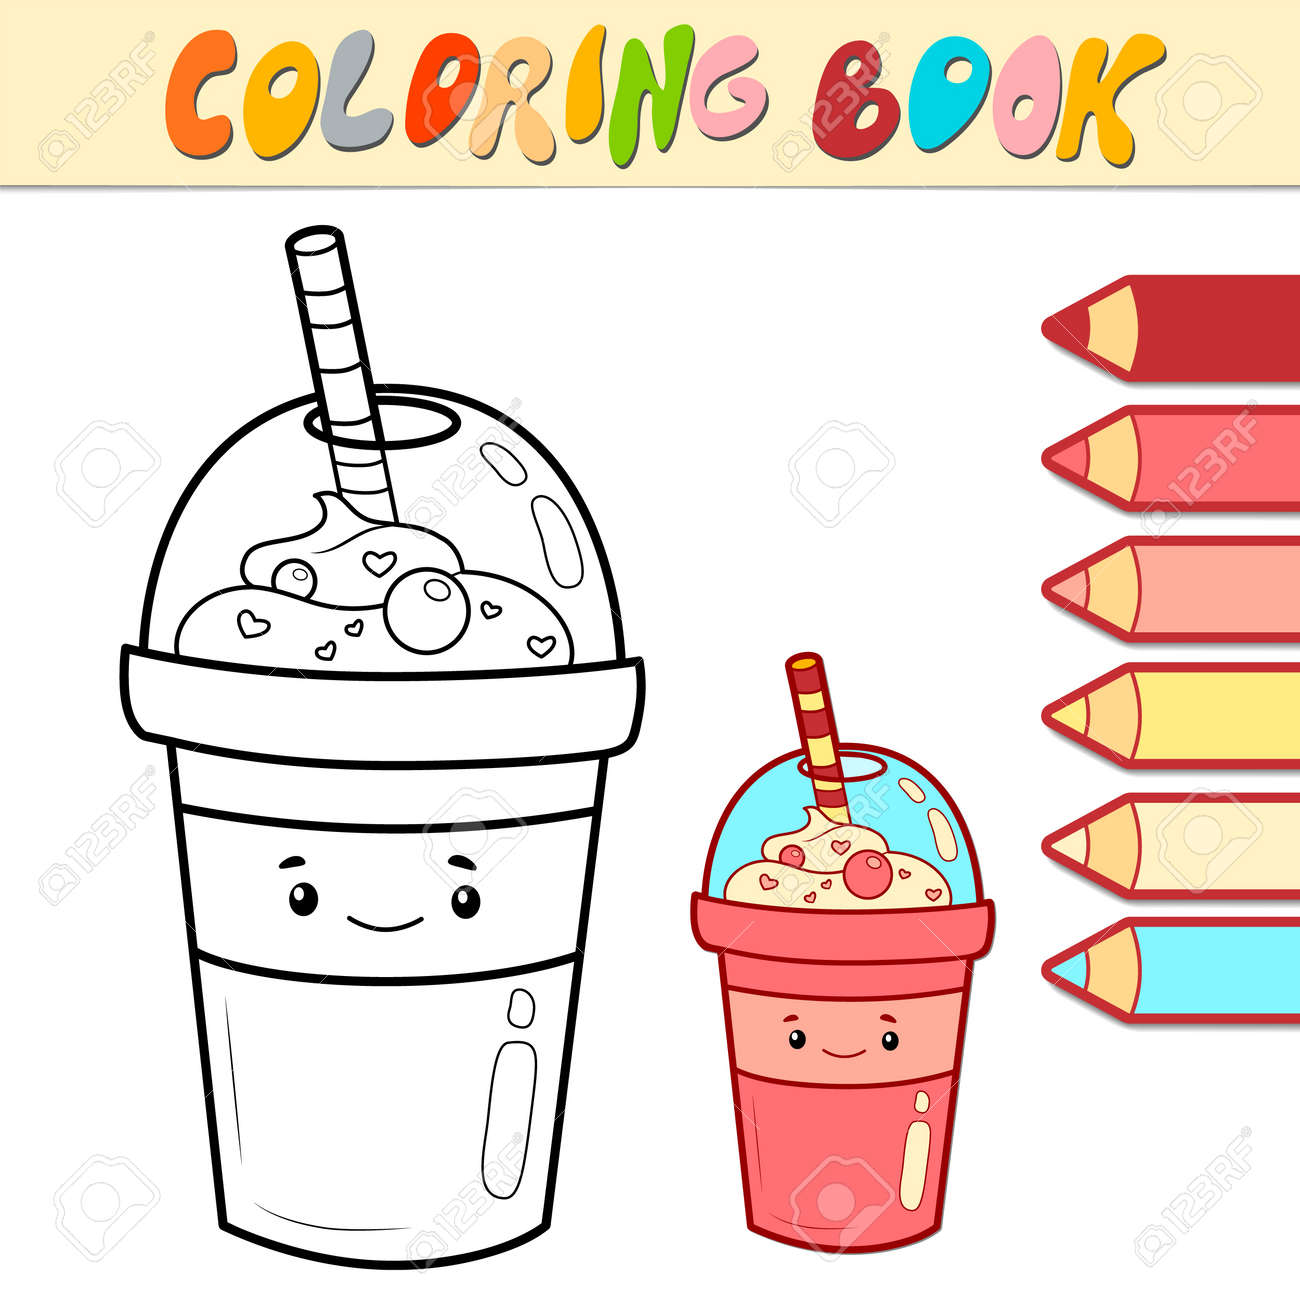 Coloring book or page for kids. drink black and white vector illustration - 168779501